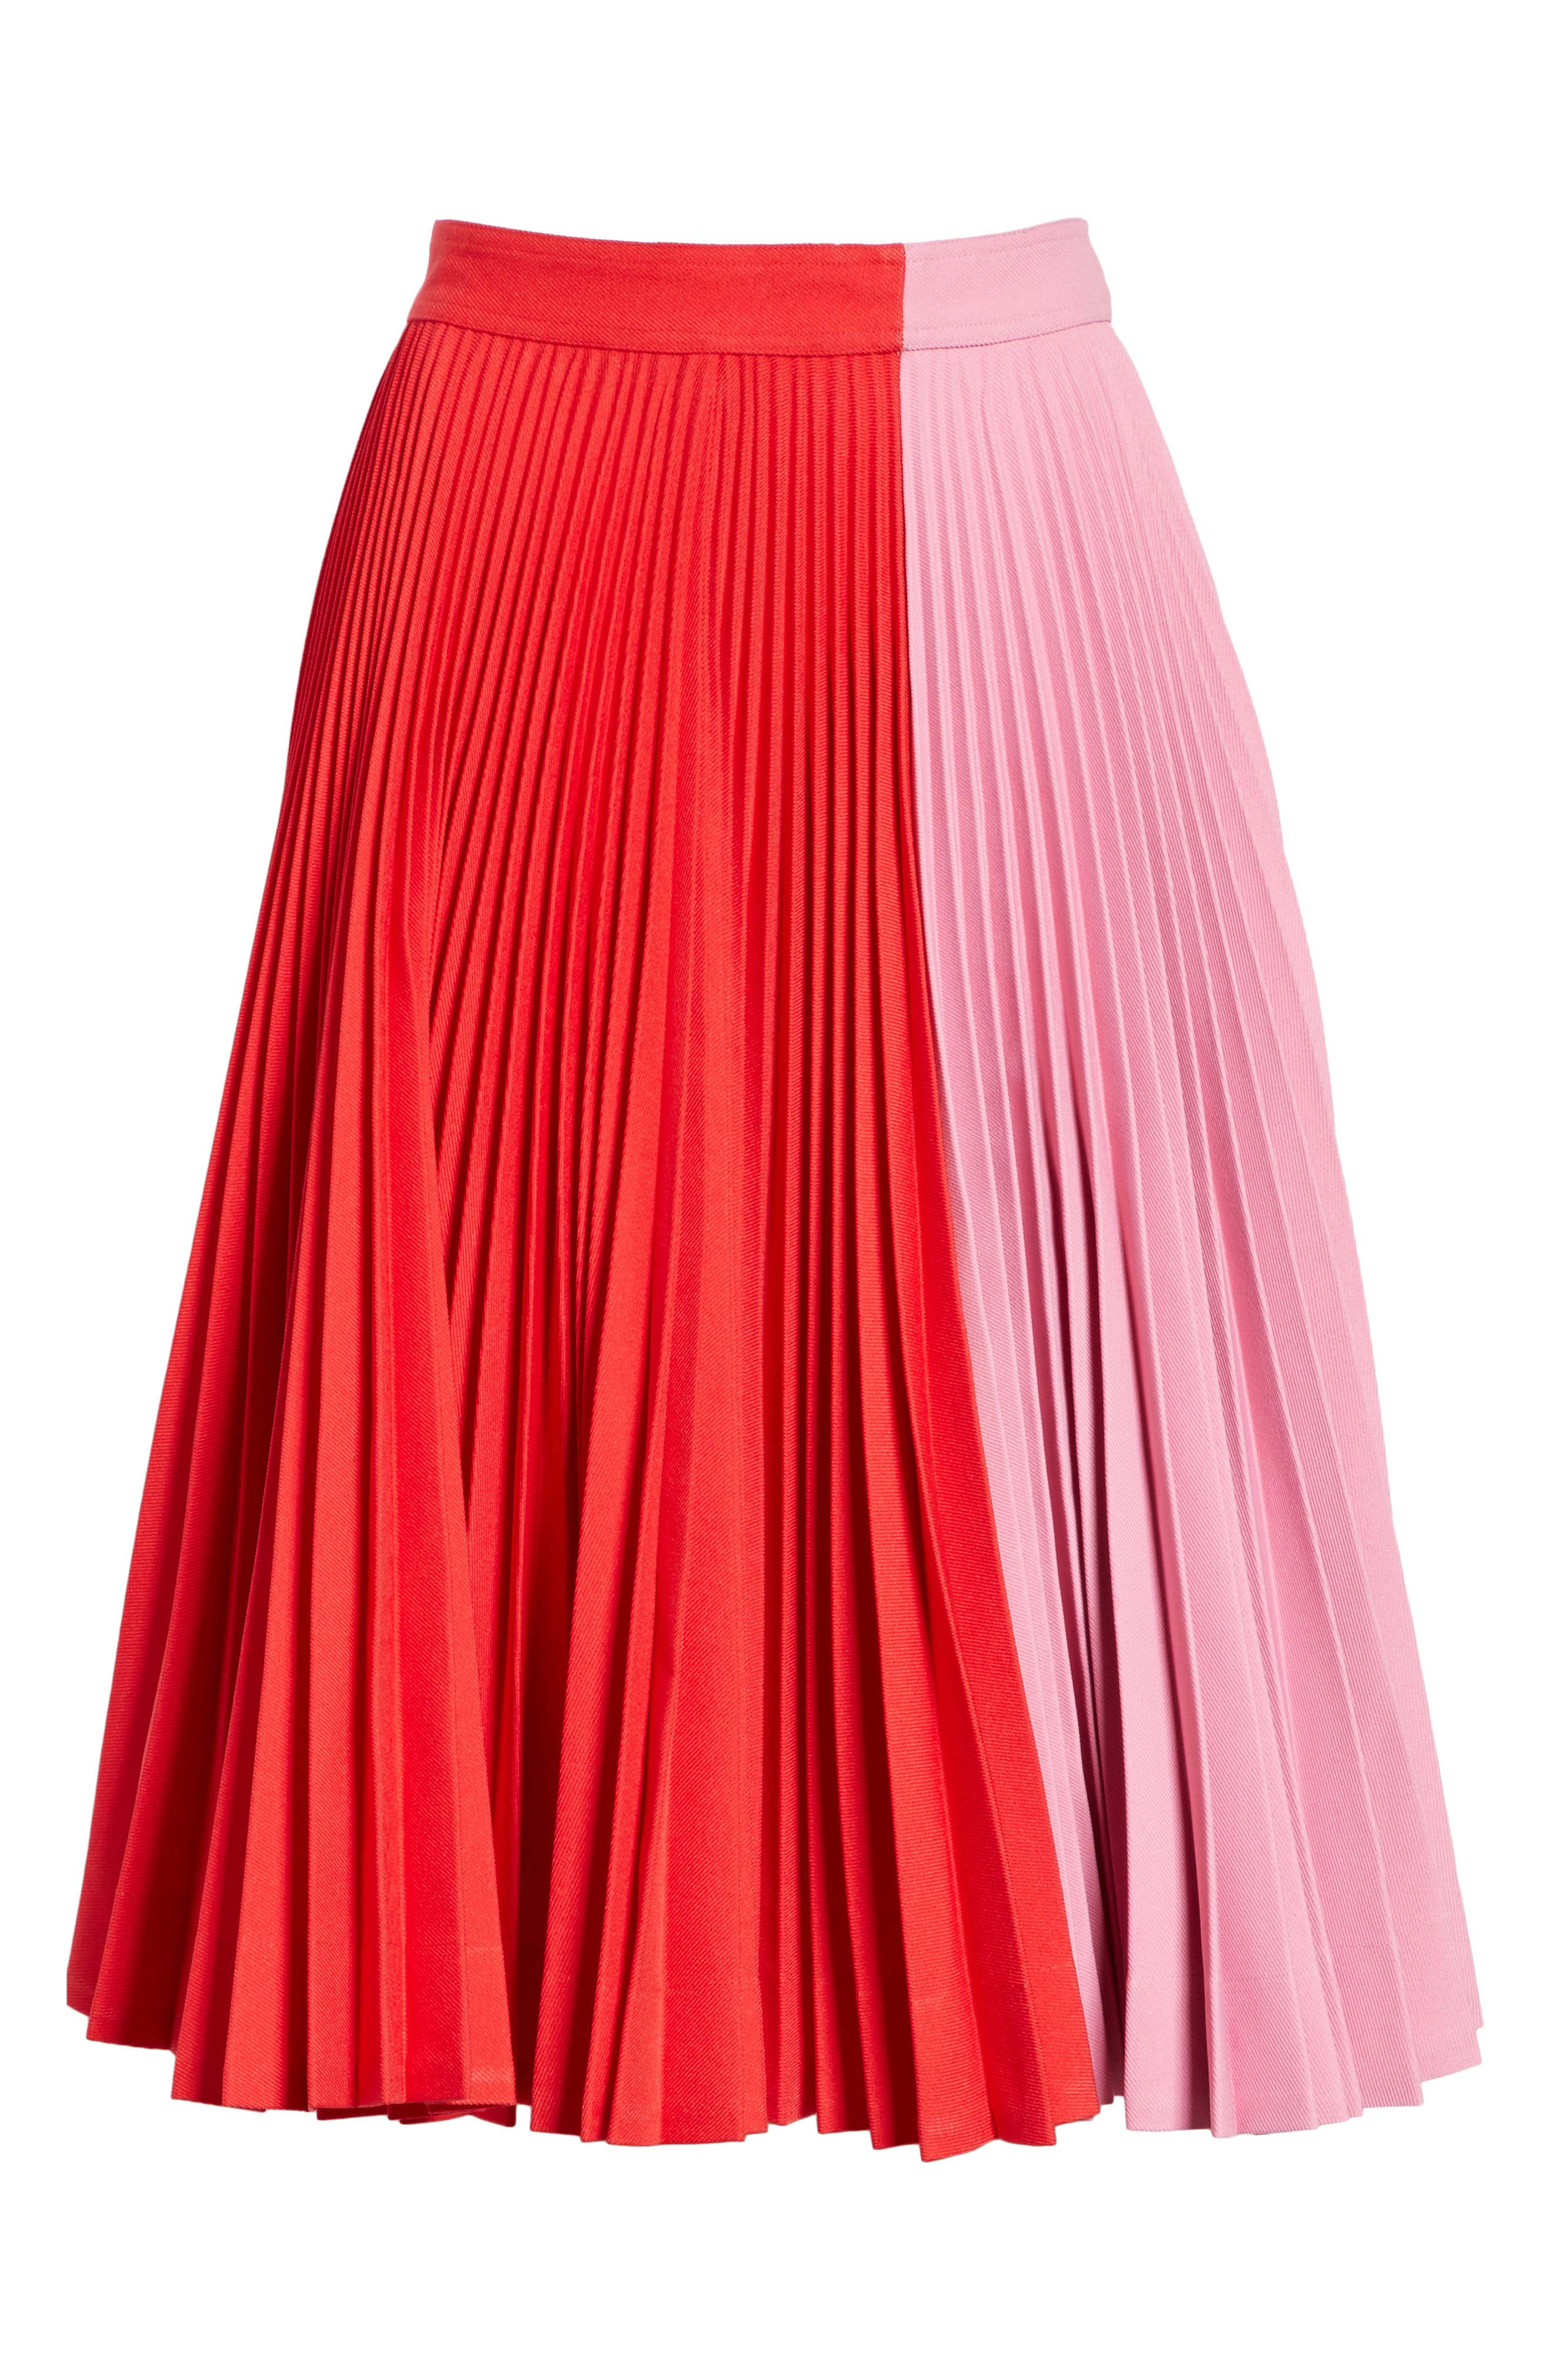 CALVIN KLEIN 205W39NYC, Bicolor Pleated Skirt, Alternate thumbnail 6, color, SCARLET ANEMONE